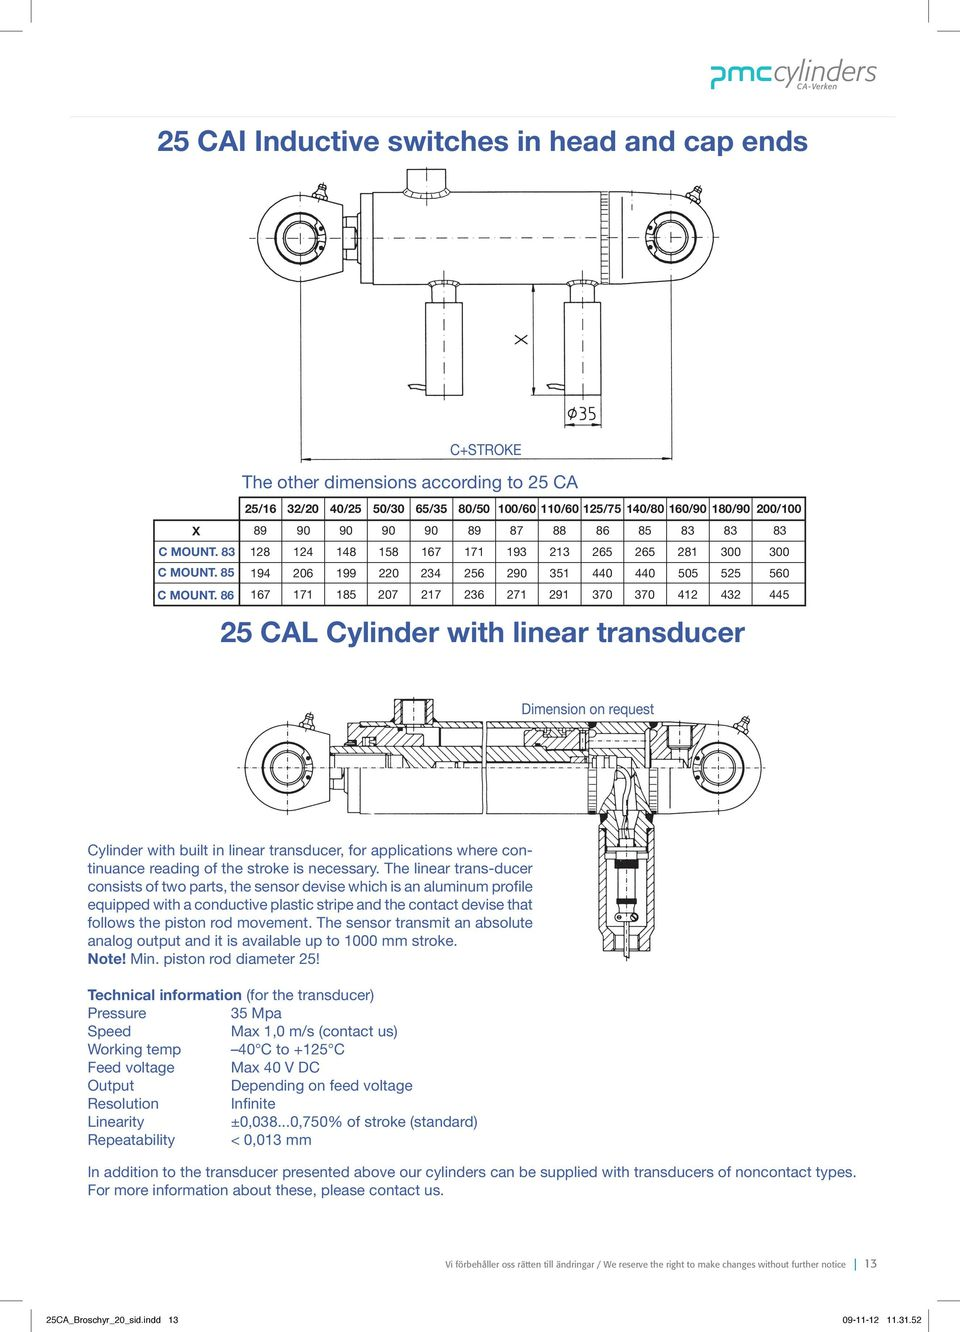 445 cal cylinder with linear transducer Dimension on request Cylinder with built in linear transducer, for applications where continuance reading of the stroke is necessary.